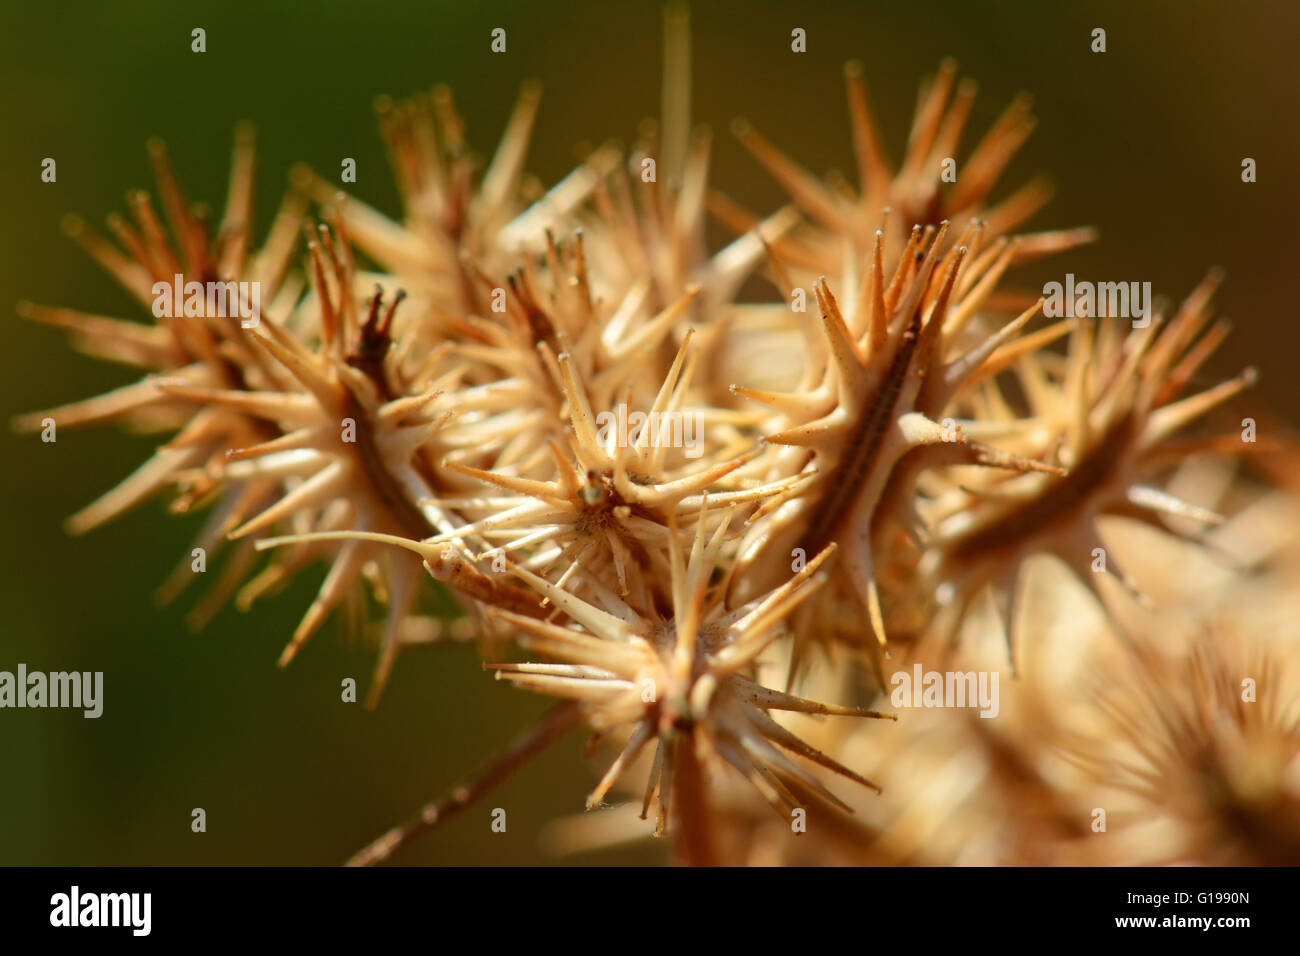 Thorny seed dispersal - Stock Image